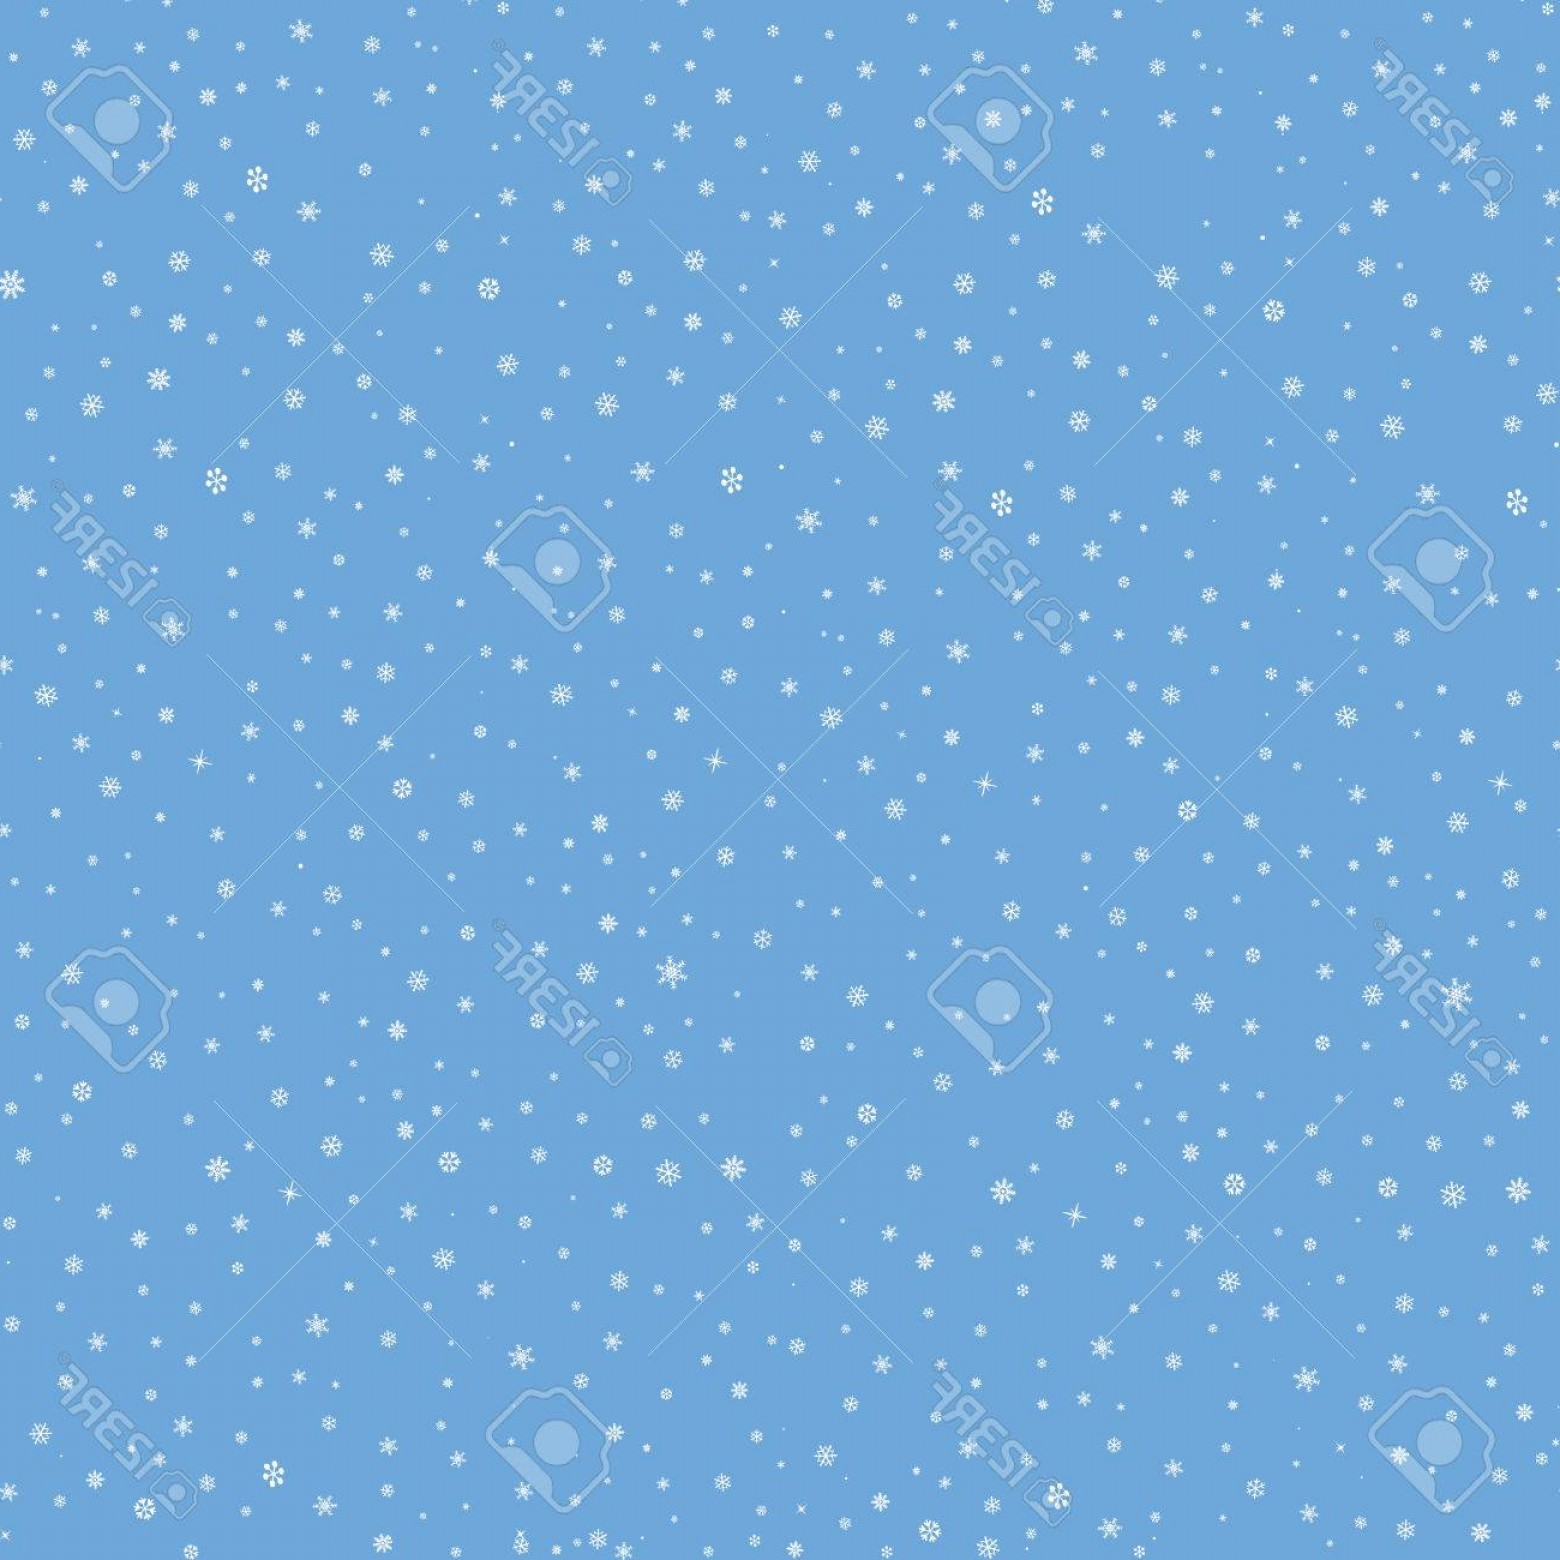 Snow Falling Vector Free: Photostock Vector Snow Winter Holiday Background Snowflakes Texture Snow Falling On Blue Background Gentle Seamless Pa